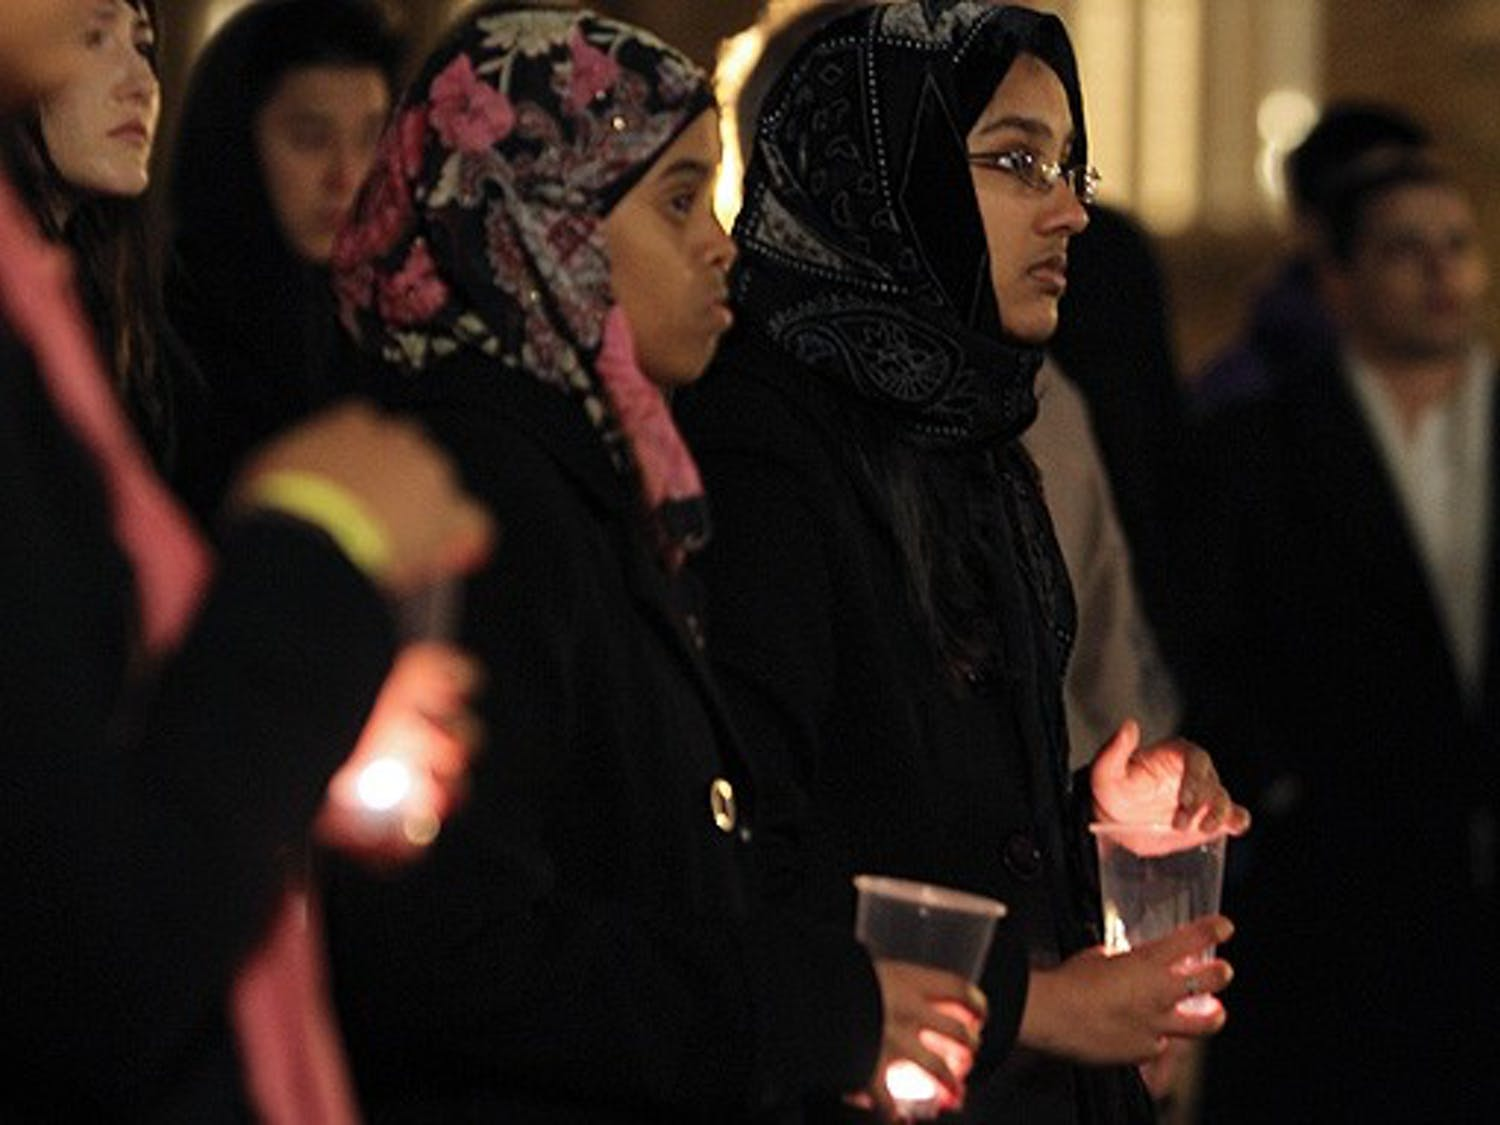 Members of the Duke and Durham communities gathered Tuesday for a candlelight vigil in honor of the anti-government protests in Egypt.